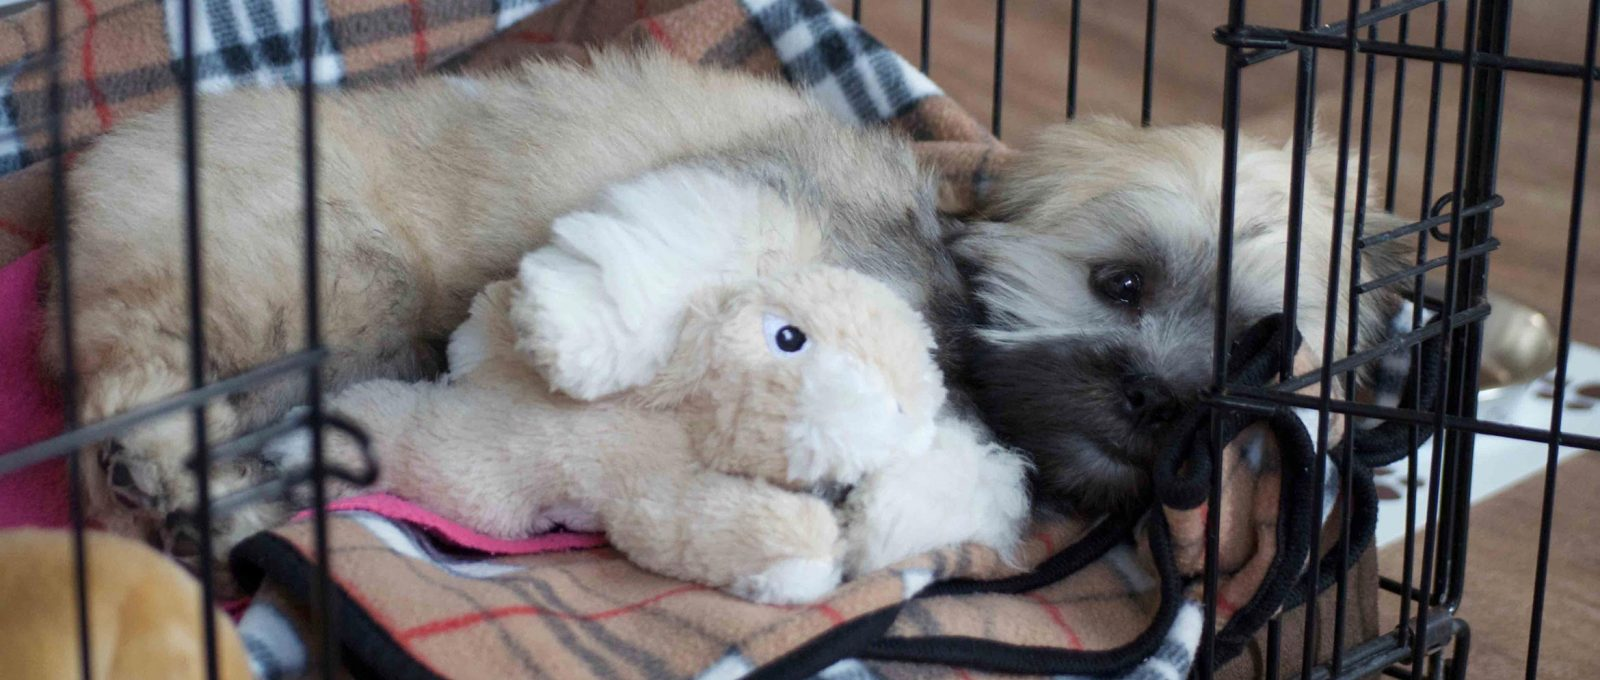 Lhasa Apso puppy sleeping in bed